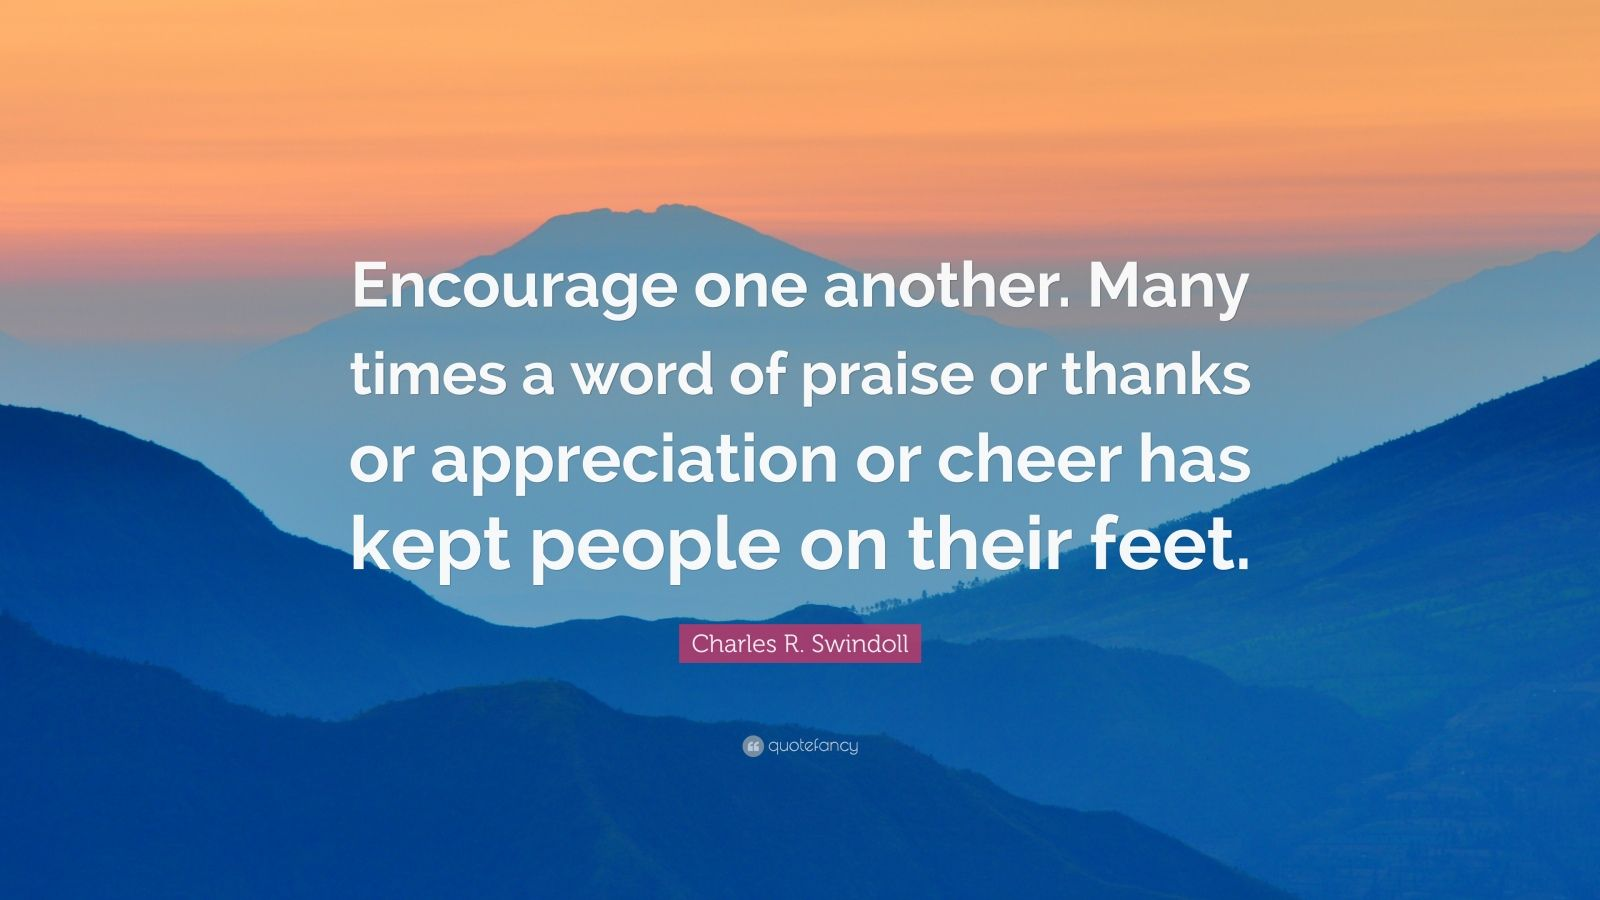 """Charles R. Swindoll Quote: """"Encourage one another. Many times a word of praise or thanks or appreciation or cheer has kept people on their feet."""""""